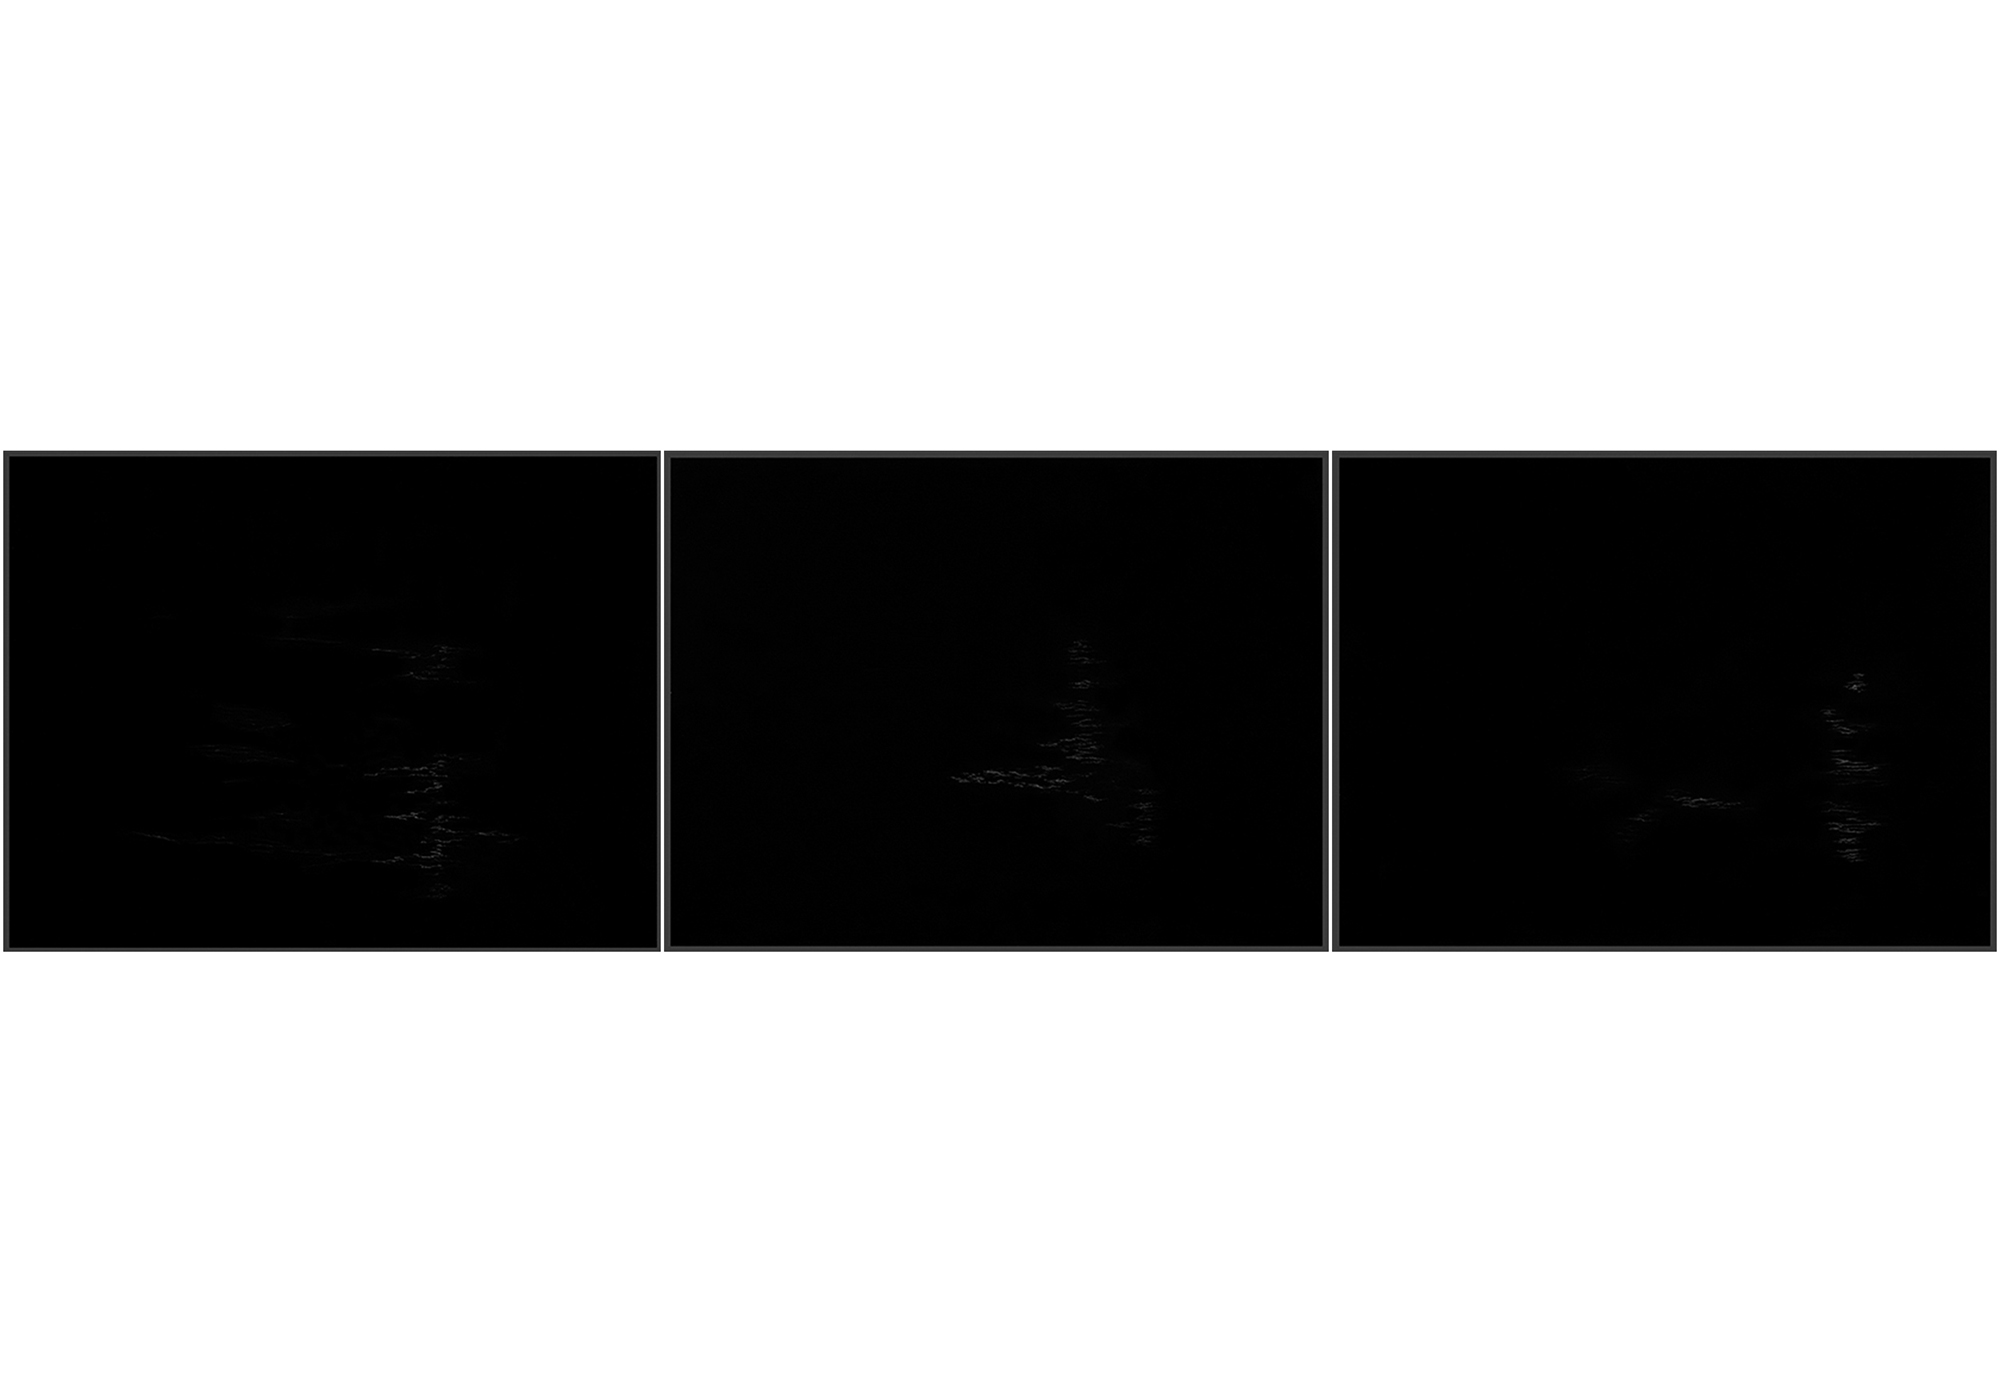 Lala Rukh  Nightscape II (8, 9, 10 - triptych) 2011 Graphite on carbon paper 20.32 x 26.67 cm each